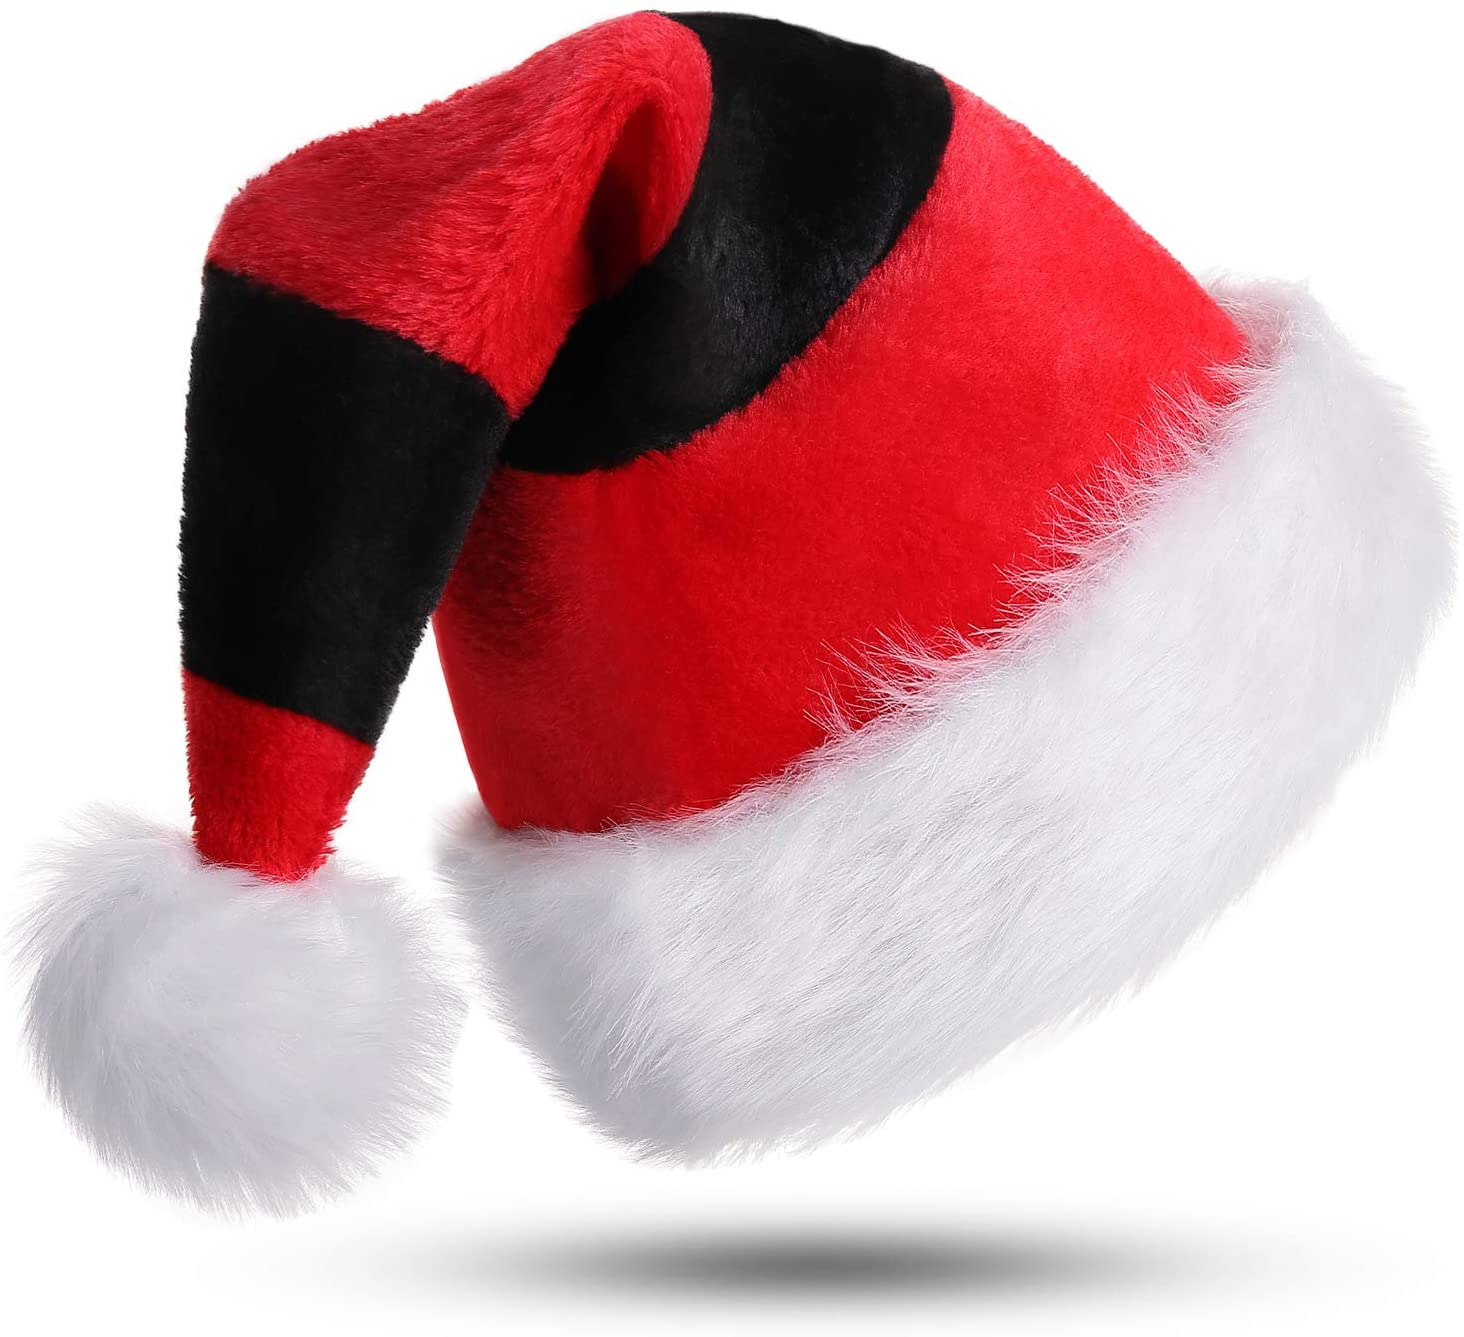 Phyxin Santa Hat Christmas Hat for Adults Stripe Santa Hats for Adults Luxury Plush Hat Classic Christmas Hats for Women Men Unisex Santa Claus Hats Xmas Caps Decoration Red&Black